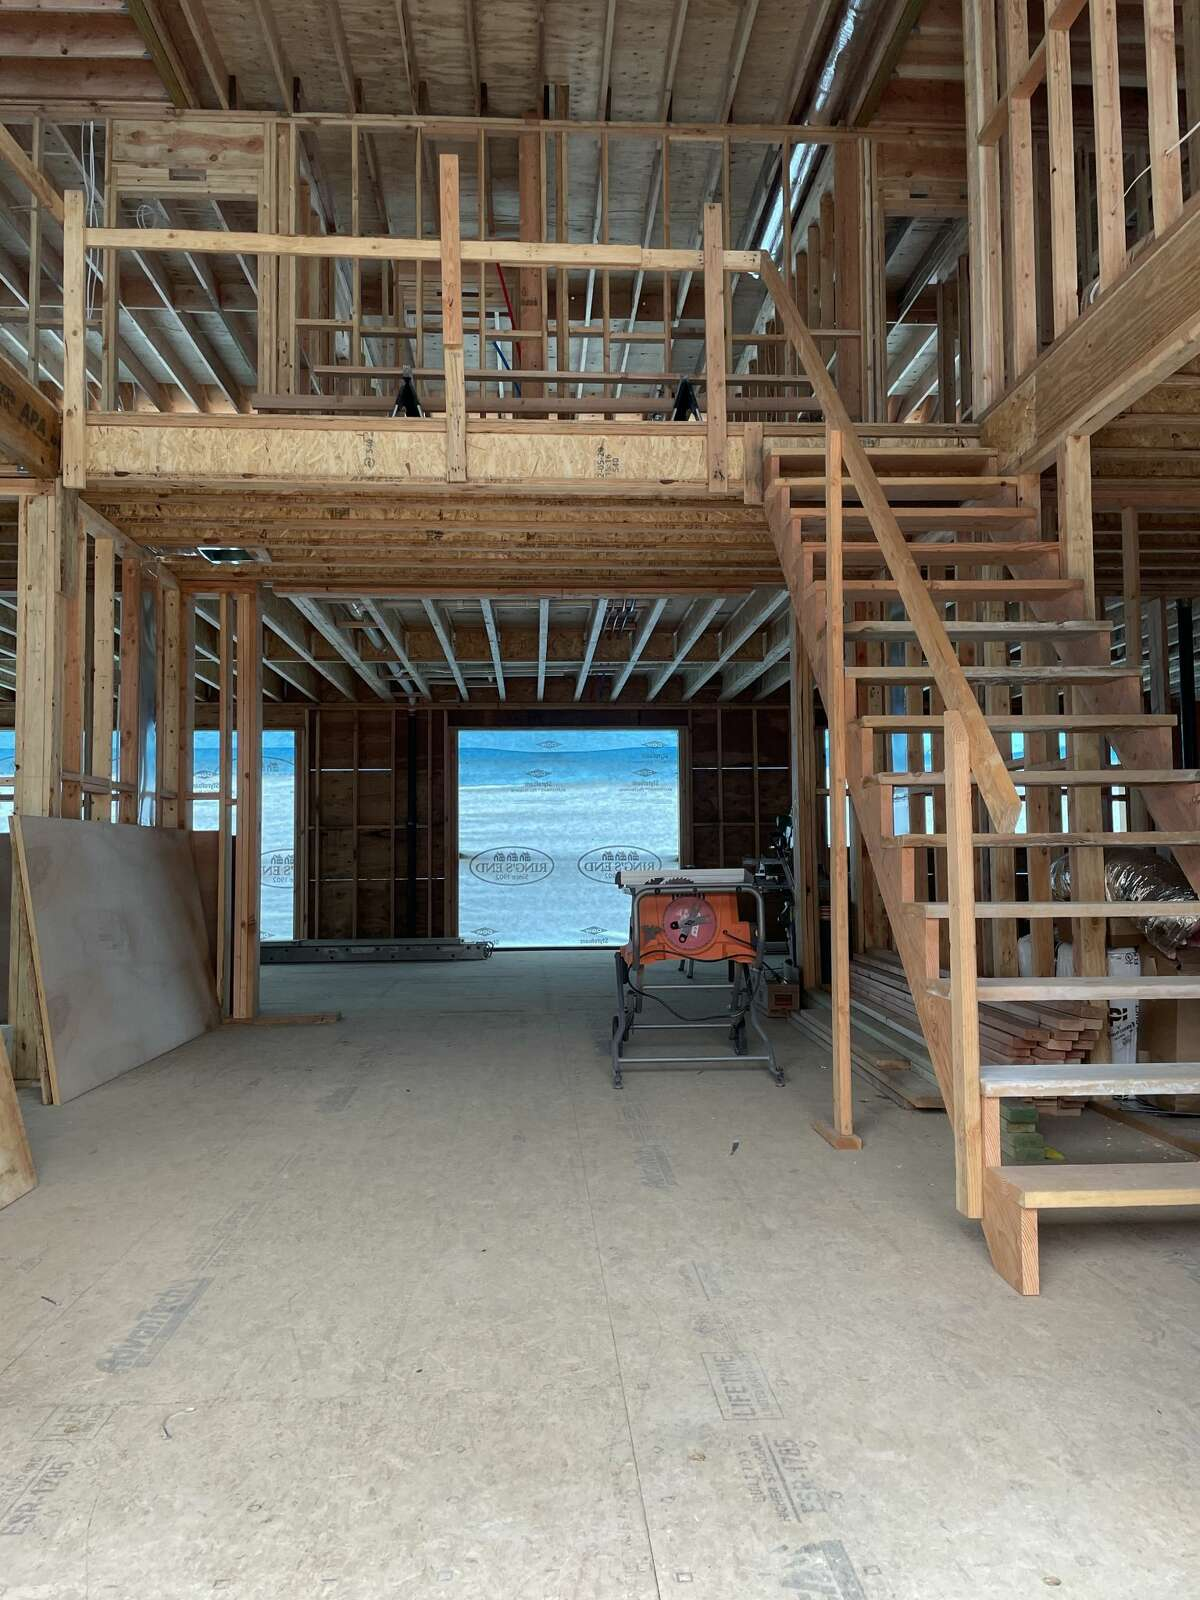 The interior of the home at 15 Salem Road in Weston, Conn. that is currently under construction and being sold by Judi Lake and Liz Videler, part of the Riverside Realty Group in Westport, Conn.